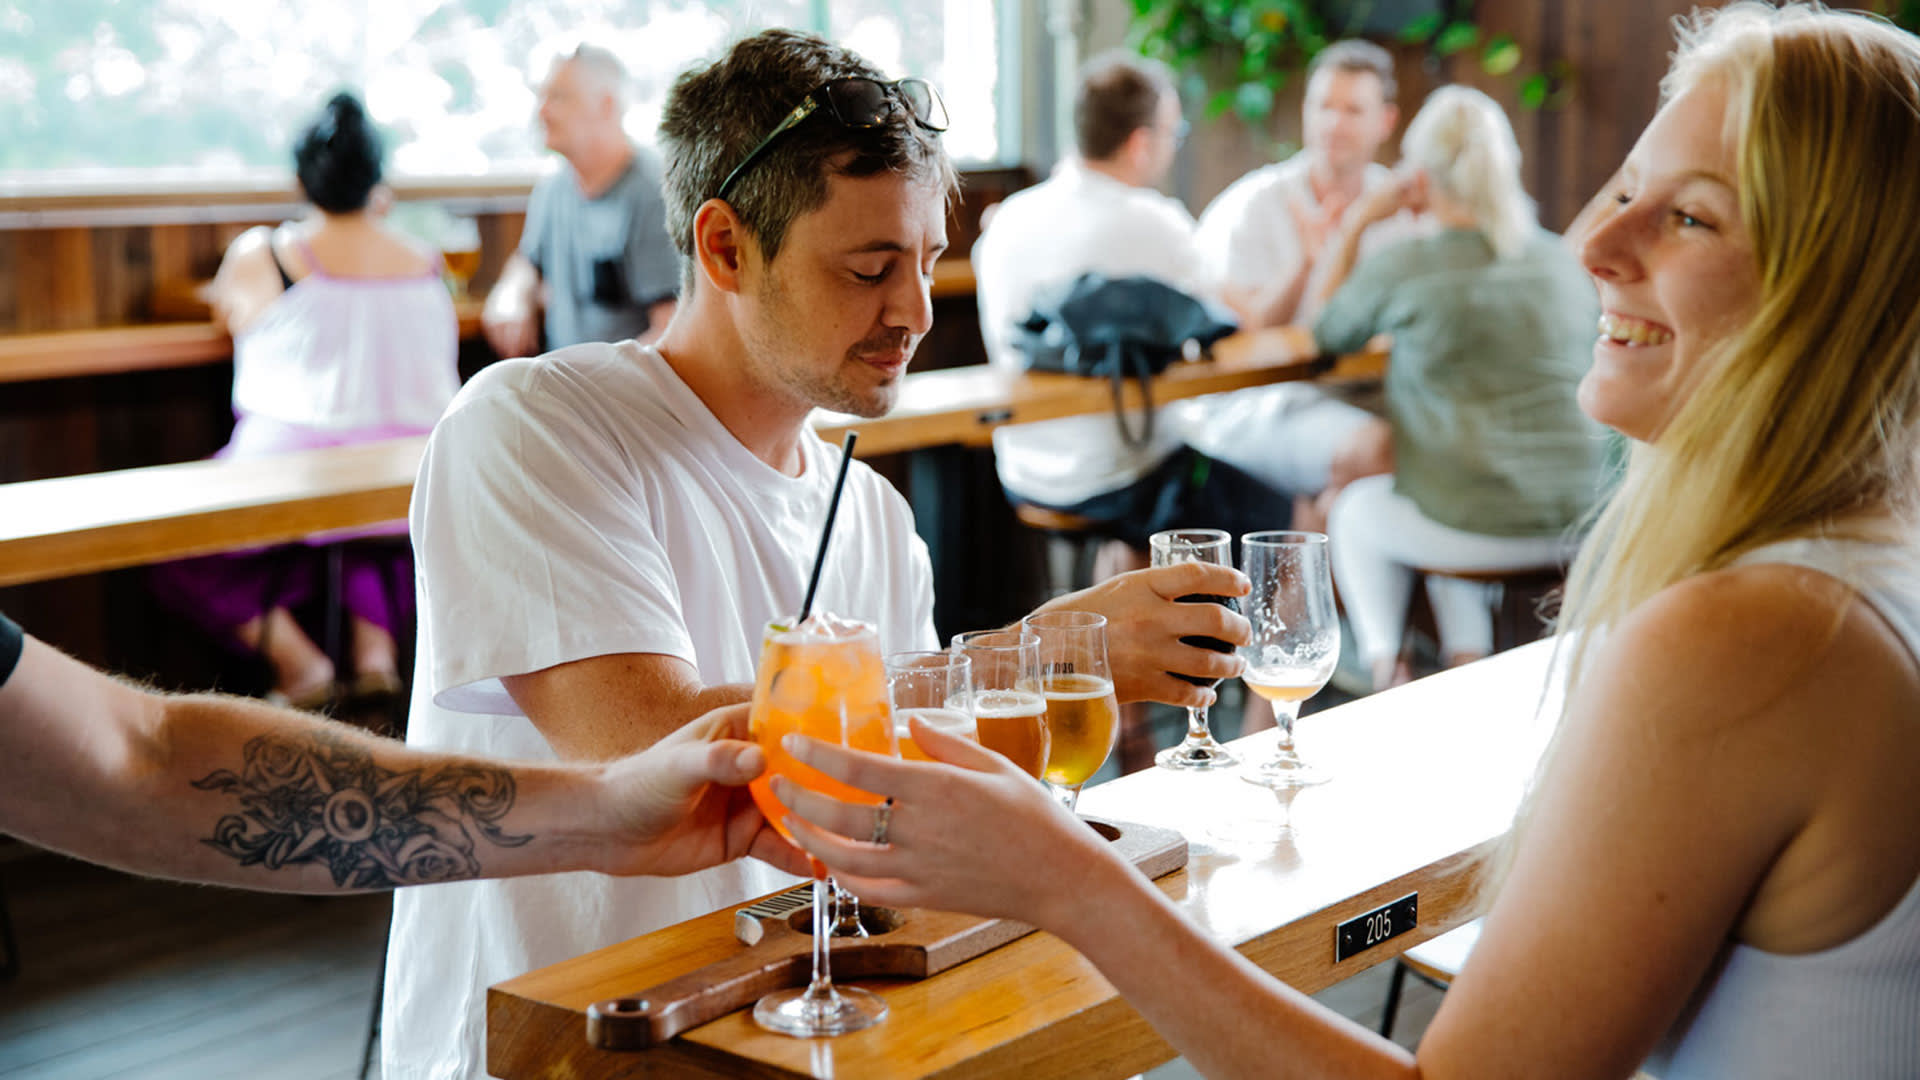 10 Sunshine Coast craft beers you MUST try (according to a local expert)